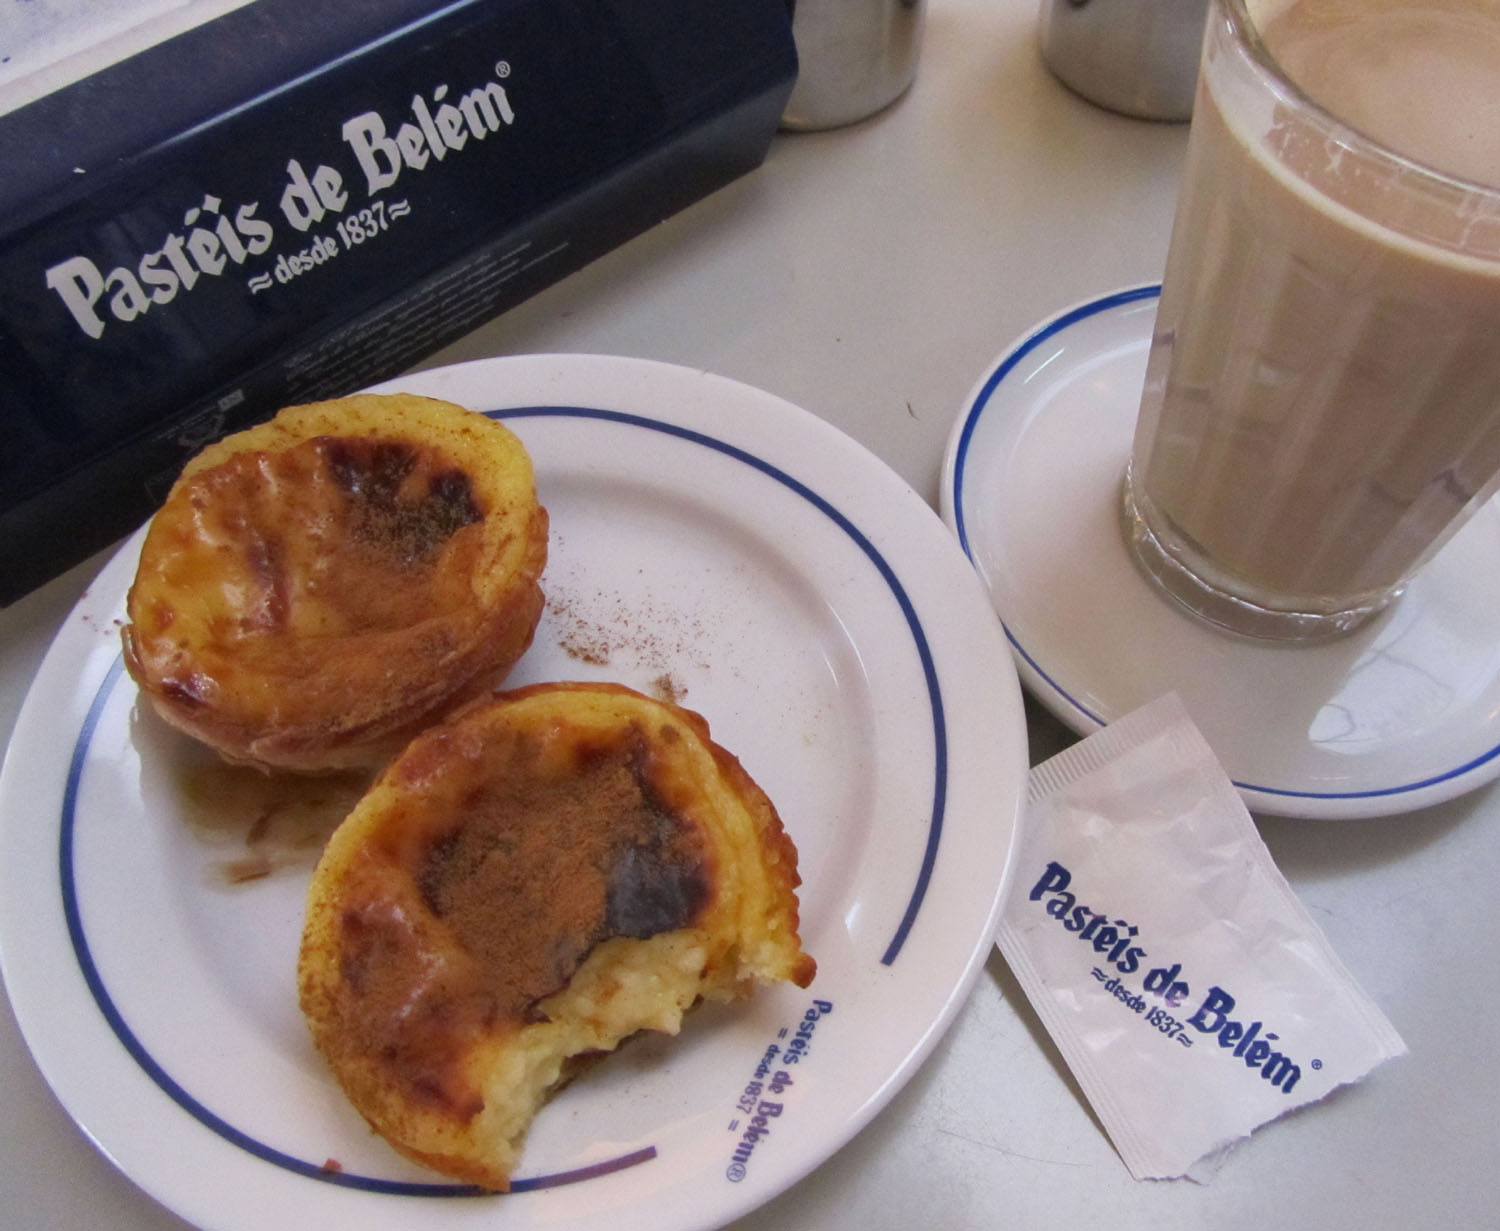 Portugal-Lisbon-Food-And-Drink-Pasteis-De-Belem